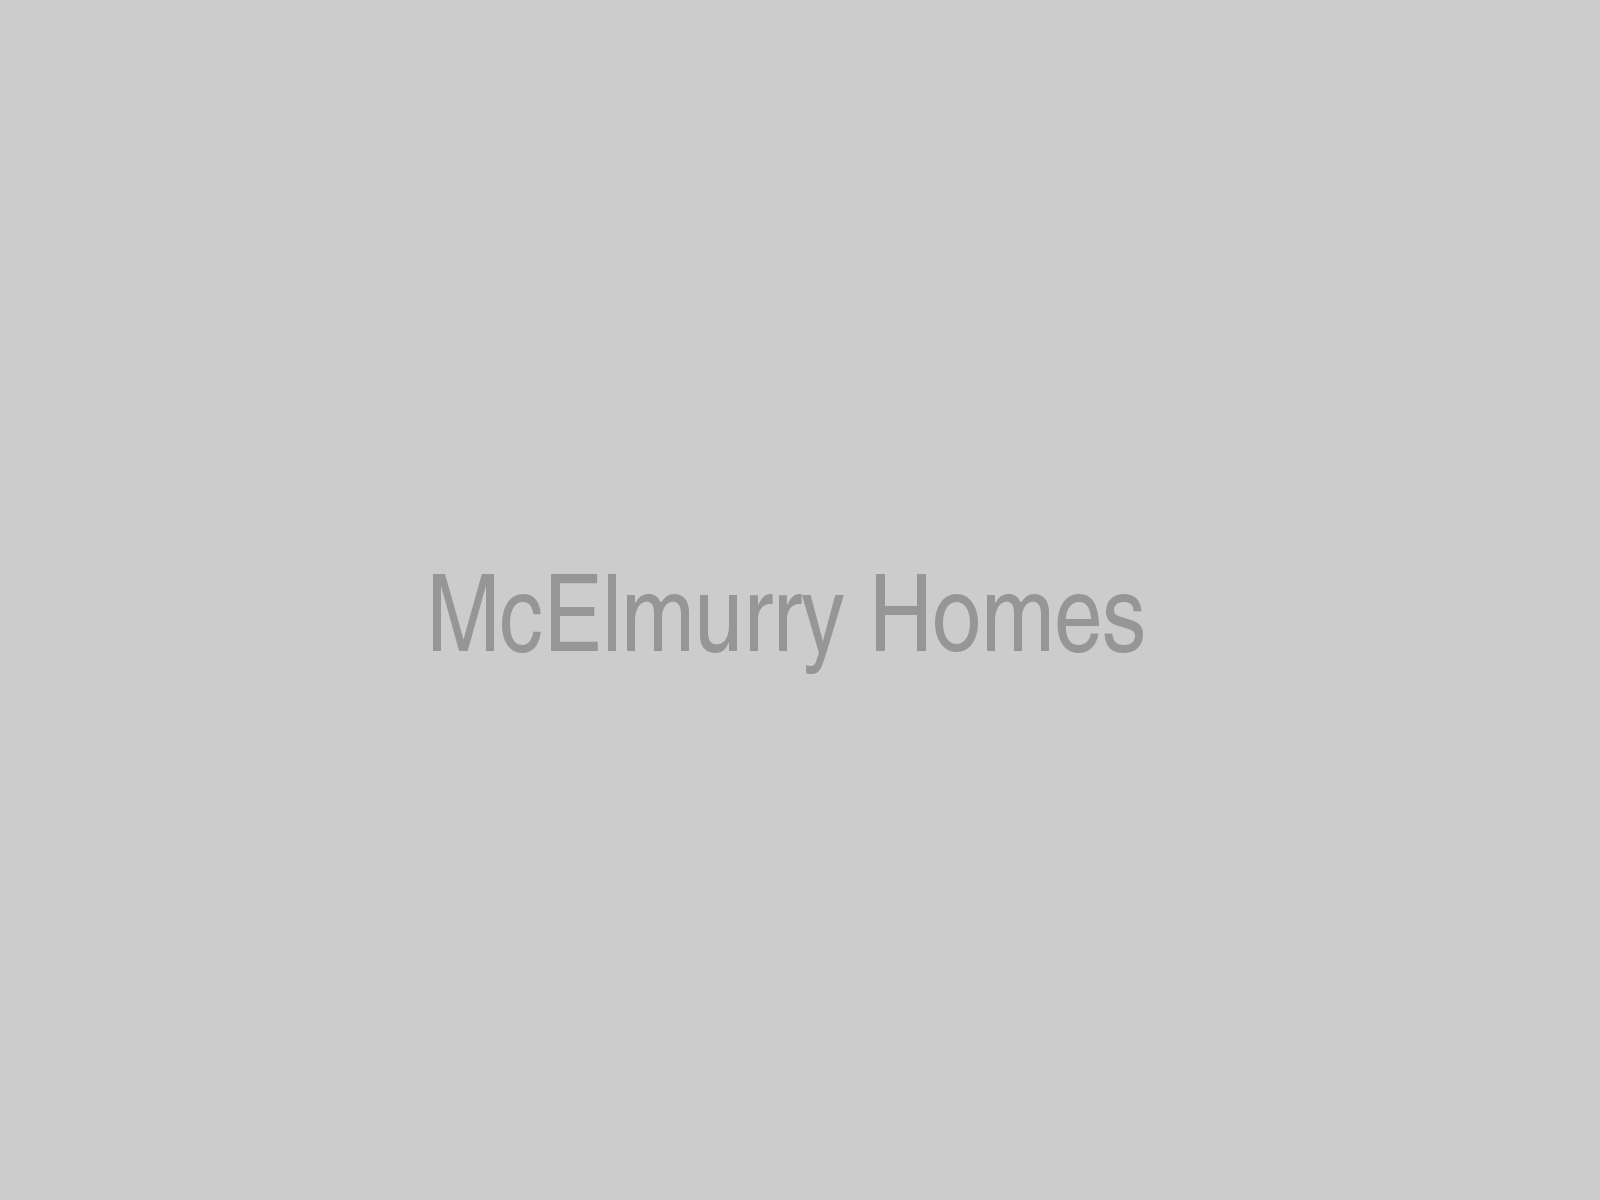 McElmurry Homes